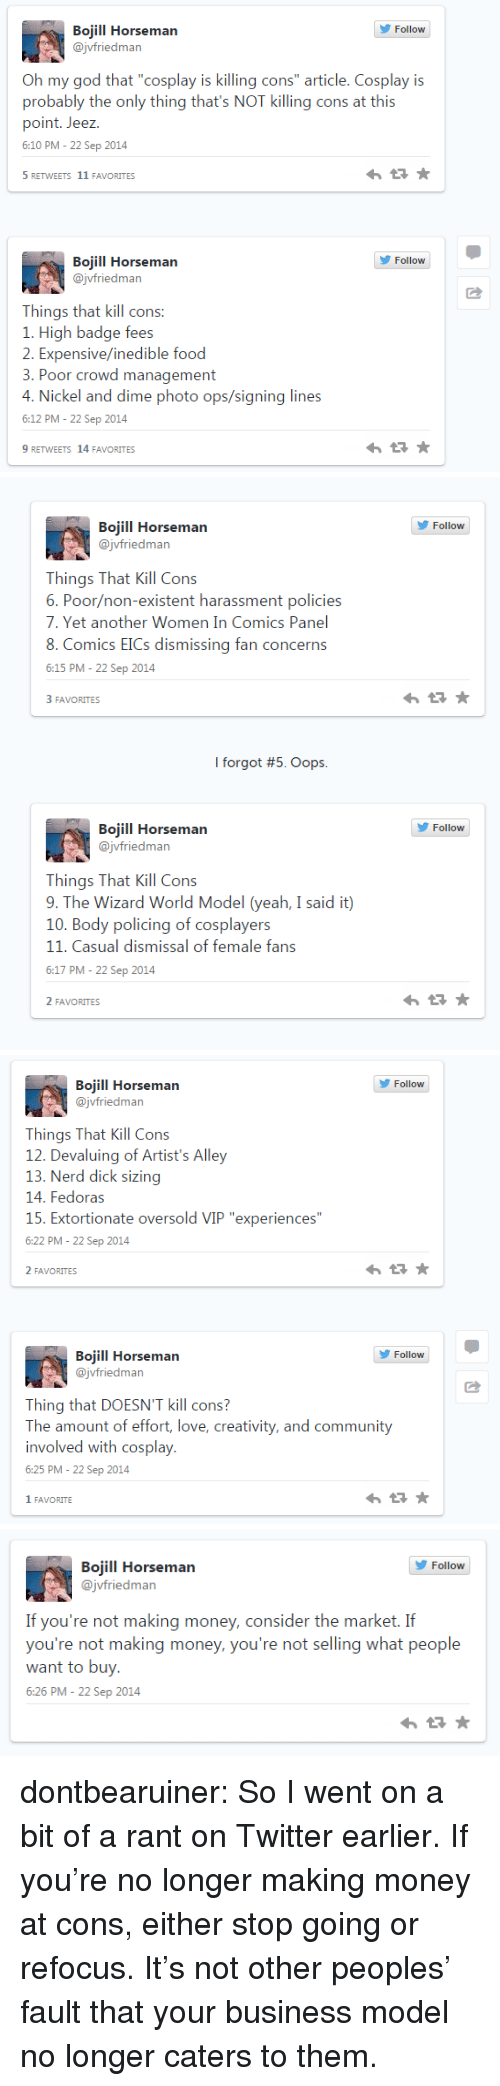 """Policing: Follow  Bojill Horseman  @jvfriedman  Oh my god that """"cosplay is killing cons"""" article. Cosplay is  probably the only thing that's NOT killing cons at this  point. Jeez.  6:10 PM- 22 Sep 2014  5RETWEETS 11 FAVORITES  Follow  Bojill Horseman  @jvfriedman  Things that kill cons:  1. High badge focs  2. Expensive/inedible food  3. Poor crowd management  4. Nickel  6:12 PM- 22 Sep 2014  9 RETWEETS 14 FAVORITES  and dime photo ops/signing lines   Bojill Horseman  @jvfriedman  ellere  Things That Kill Cons  6. Poor/non-existent harassment policies  7. Yet another Women In Comics Panel  8. Comics EICs dismissing fan concerns  6:15 PM- 22 Sep 2014  FAVORITES  I forgot #5 Oops.  Bojill Horseman  @jvfriedman  ellere  Things That Kill Con:s  9. The Wirard World Model (ycah, I said i)  10. Body policing of cosplayers  11. Casual dismissal of female fans  6:17 PM- 22 Sep 2014  2 FAVORITES   Follow  Bojill Horseman  @jvfriedman  Things That Kill Con:s  12. Devaluing of Artist's Alley  13. Nerd dick sizing  14. Fedoras  15. Extortionate oversold VIP """"experiences""""  6:22 PM- 22 Sep 2014  2 FAVORITES  Follow  Bojill Horseman  @jvfriedman  Thing that DOESN'T kill cons?  Th aount of ffori, love, crativiiy, and communiy  involved with cosplay,  6:25 PM- 22 Sep 2014  1 FAVORITE   Follow  Bojill Horseman  @jvfriedman  yo'ot making mony, consickr ih market If  you're not making money, you're not selling what people  want to buy.  6:26 PM - 22 Sep 2014 dontbearuiner:  So I went on a bit of a rant on Twitter earlier. If you're no longer making money at cons, either stop going or refocus. It's not other peoples' fault that your business model no longer caters to them."""